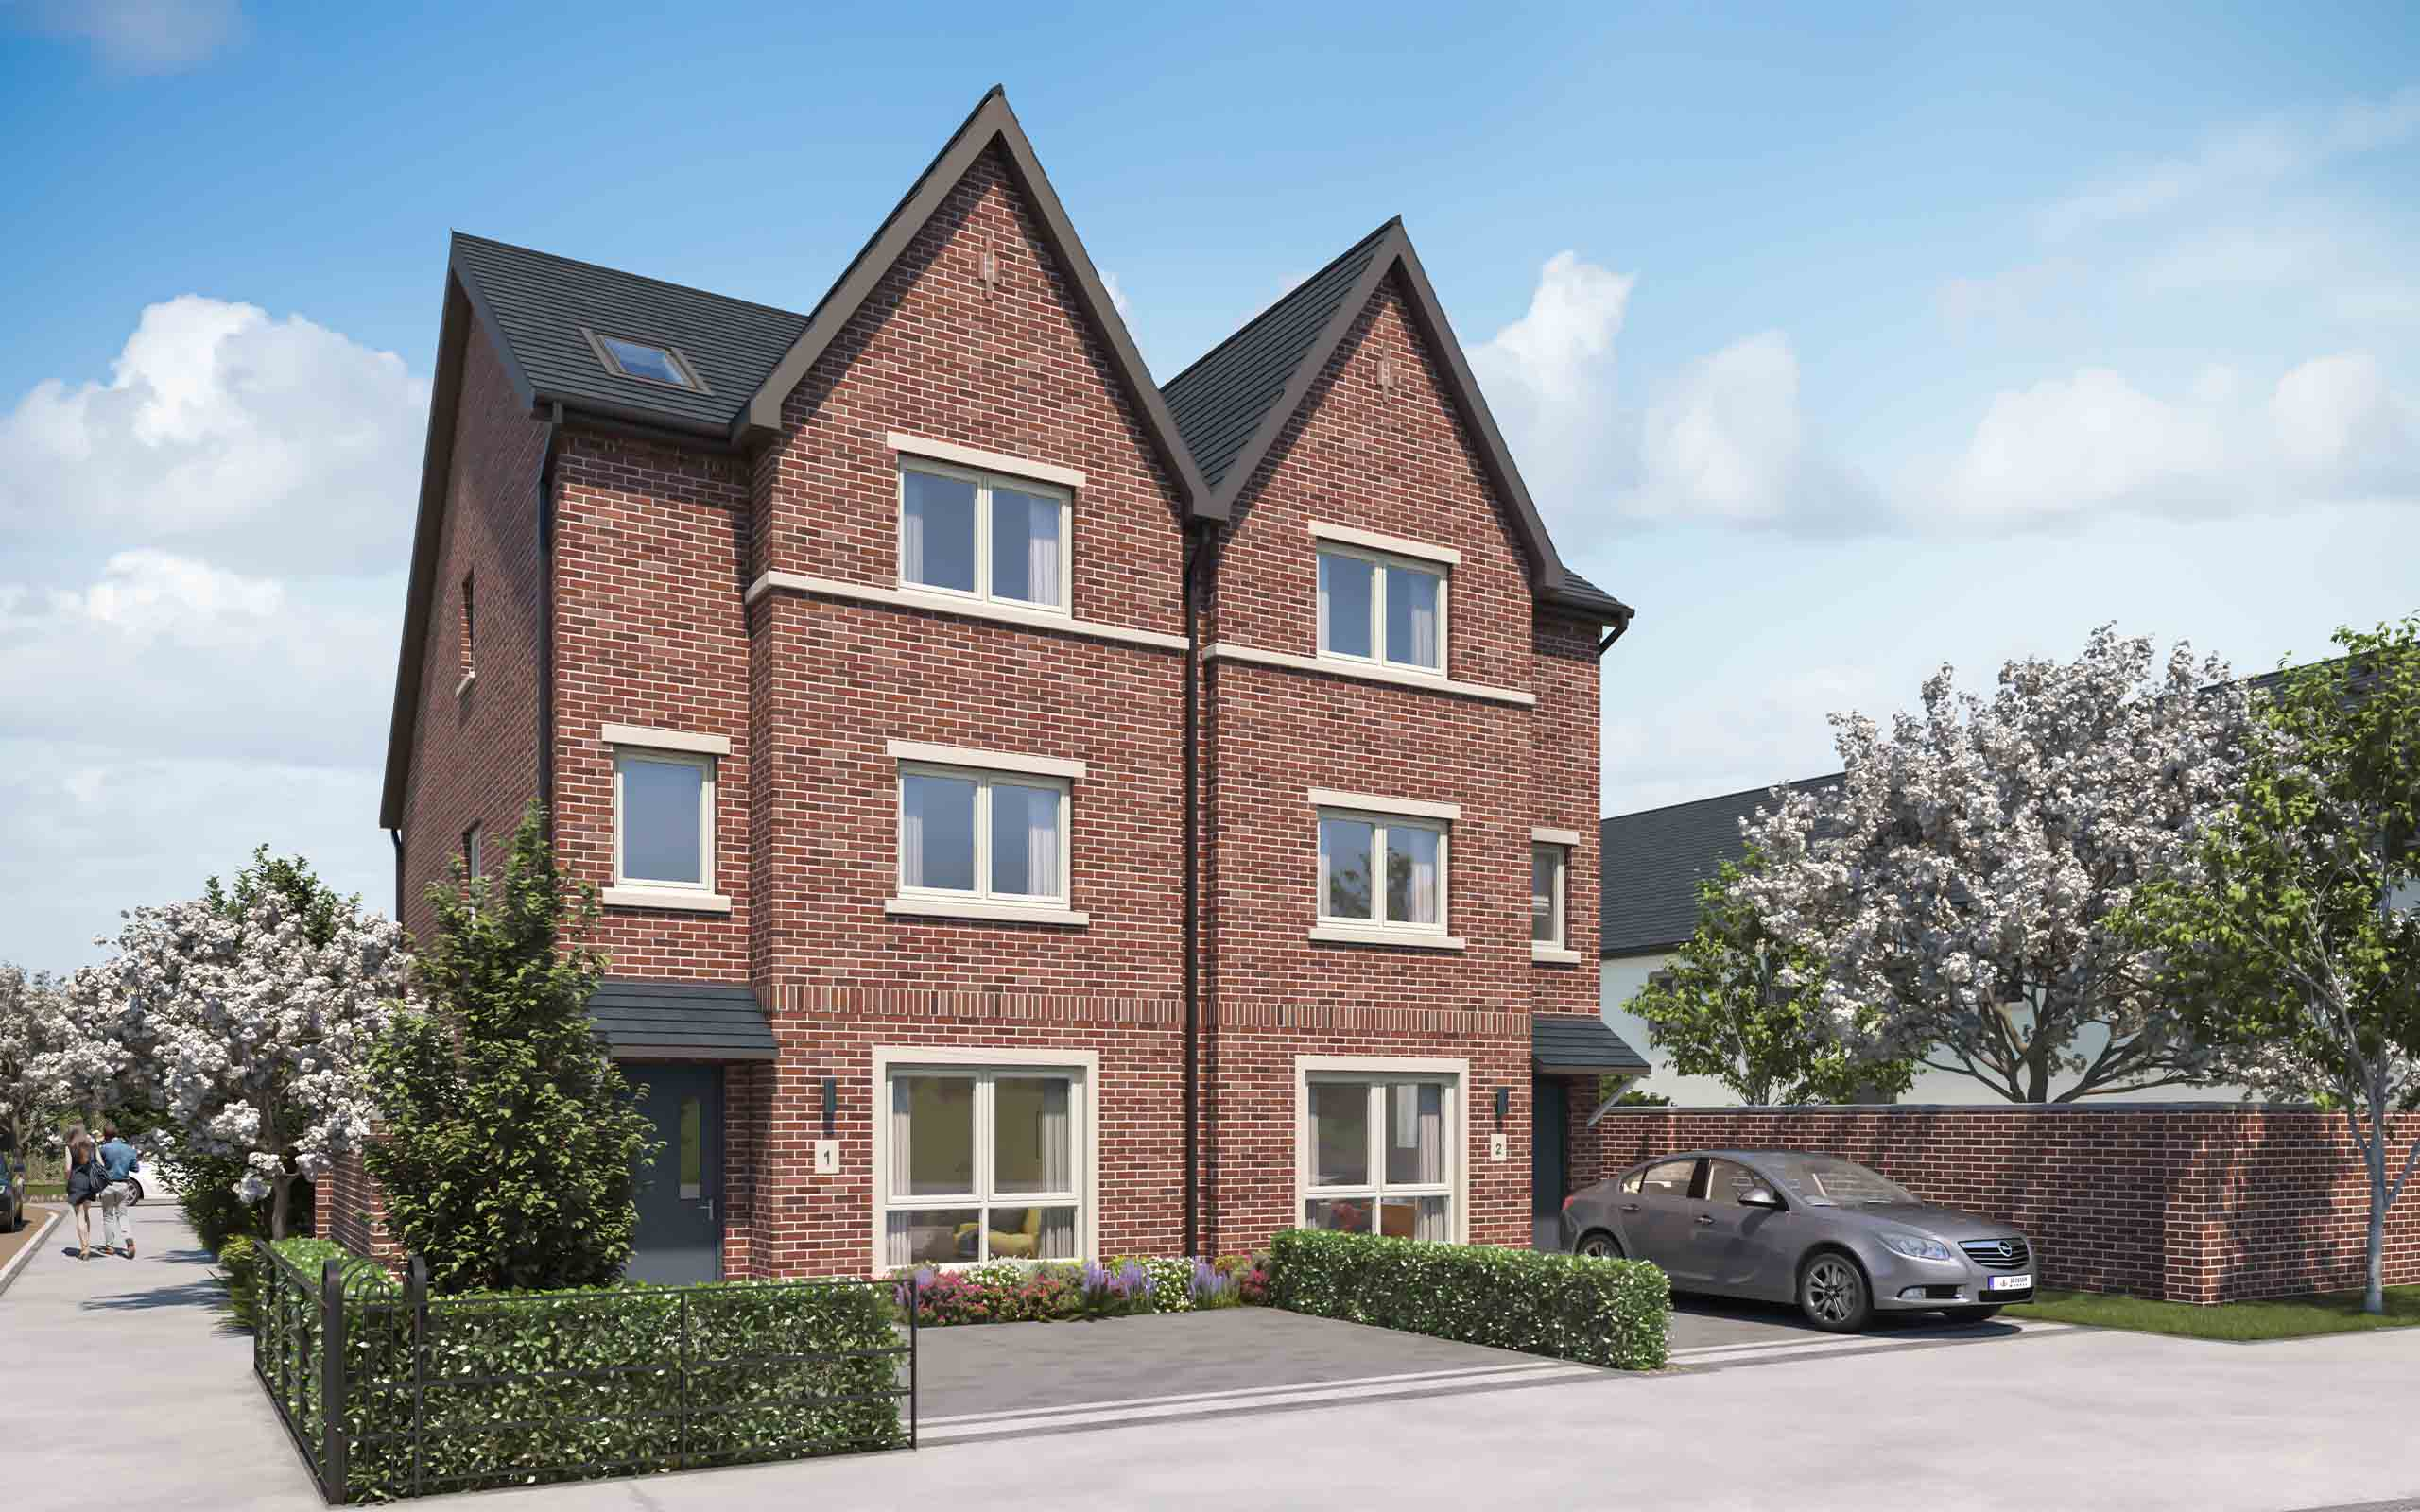 Architectural CGI of Mercy Vale residential development in Cherrywood, Dublin.